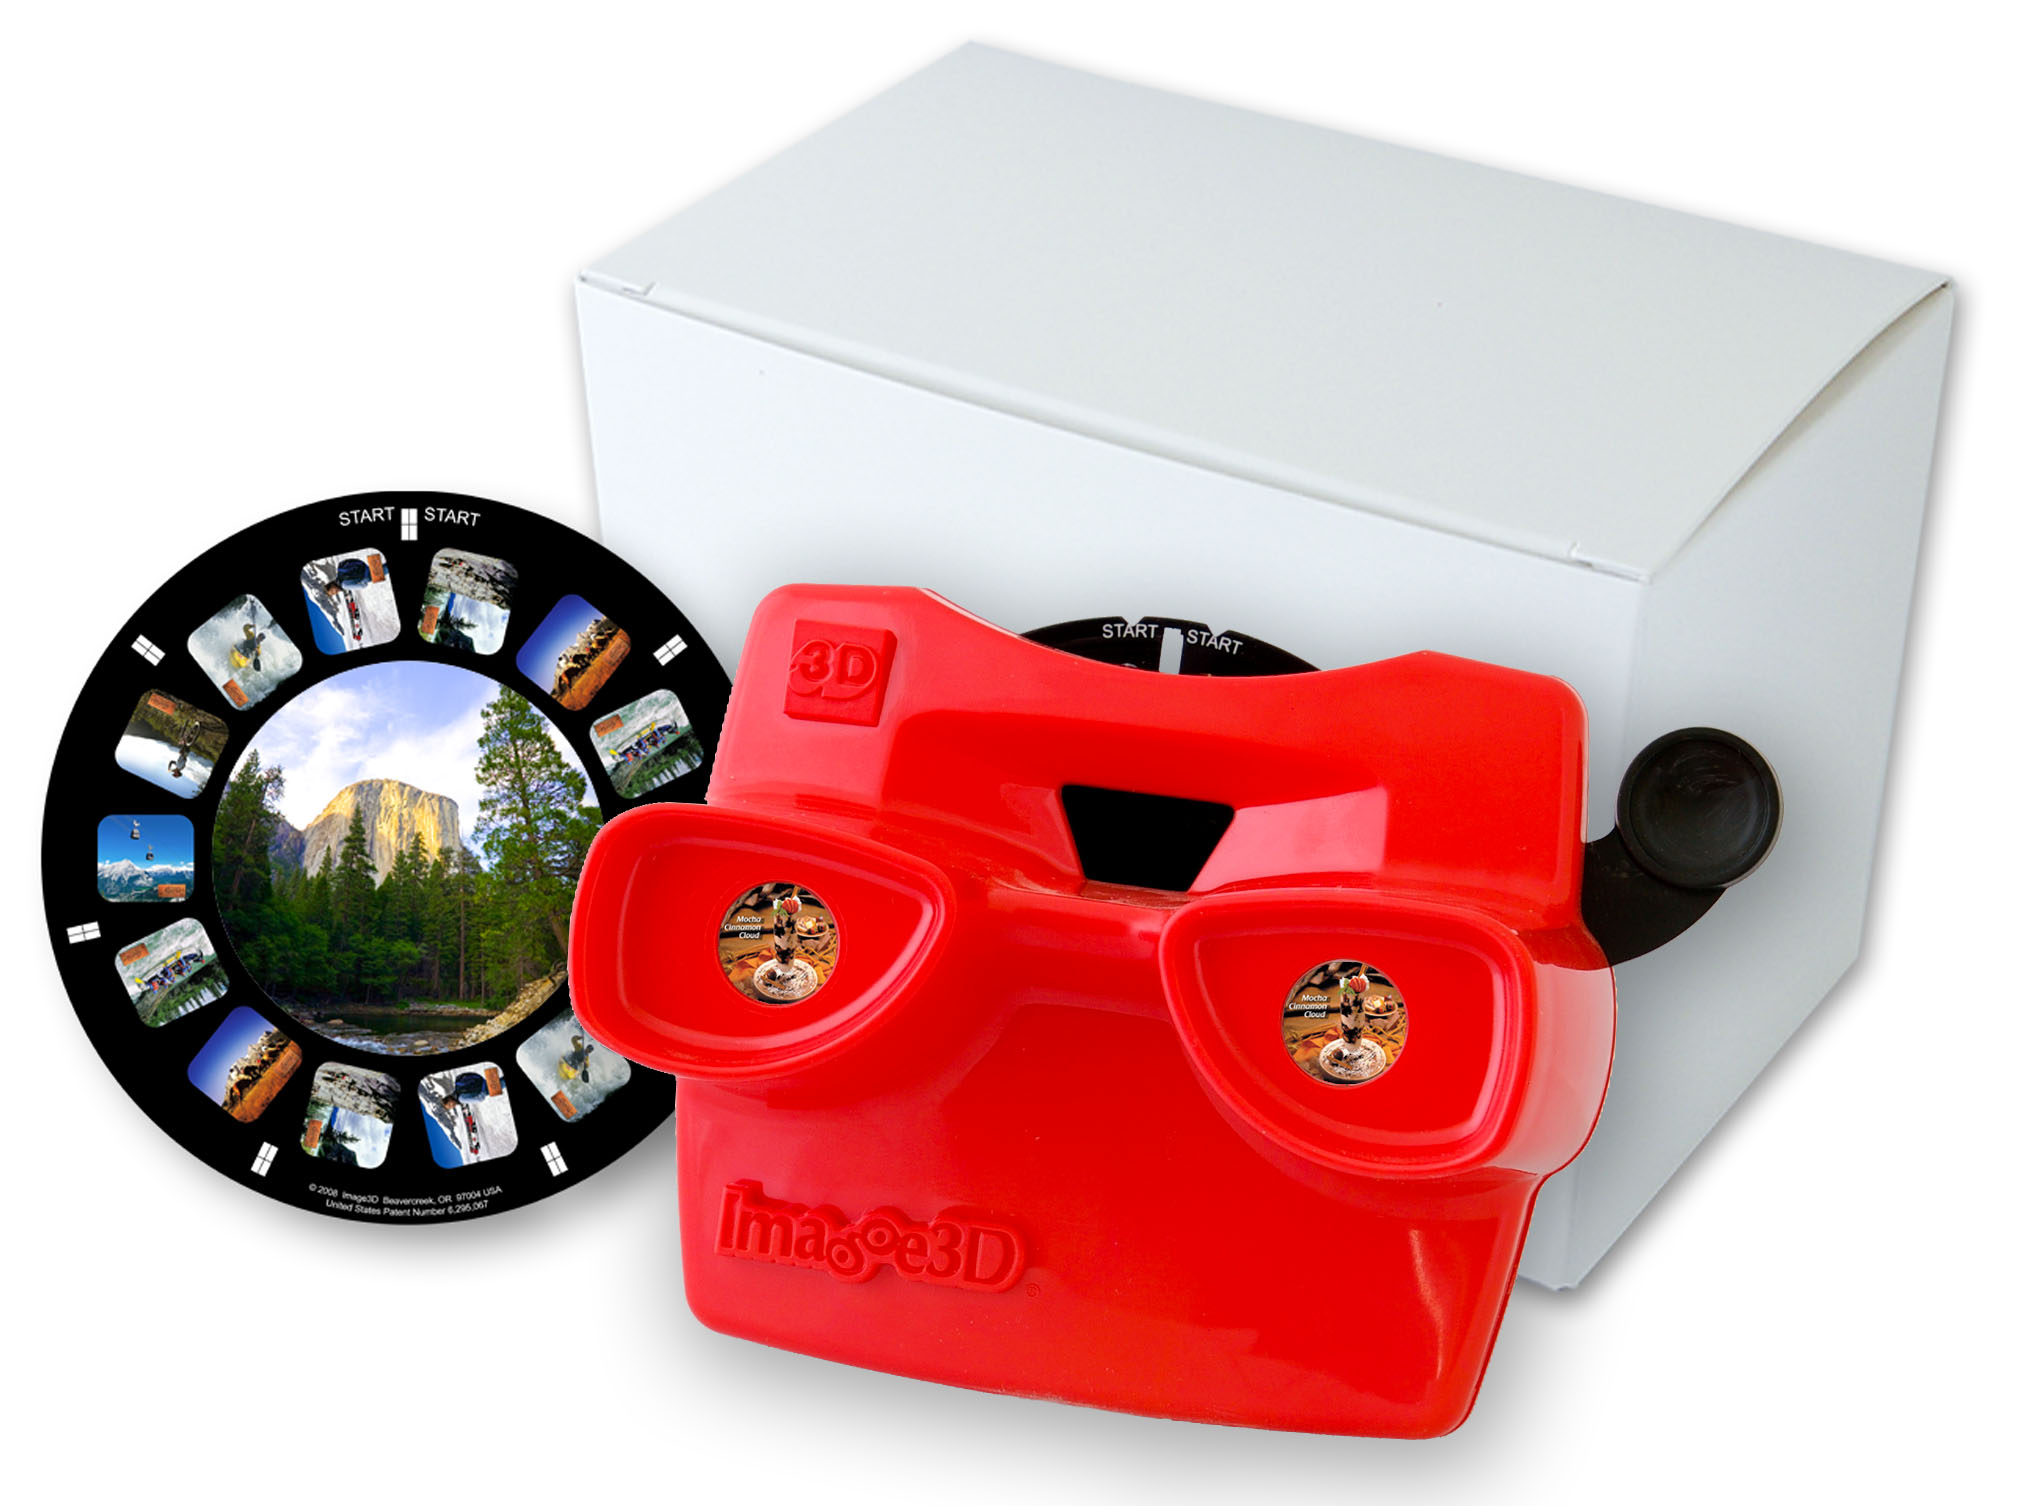 Lavish Boudoir - Image Viewer Toy